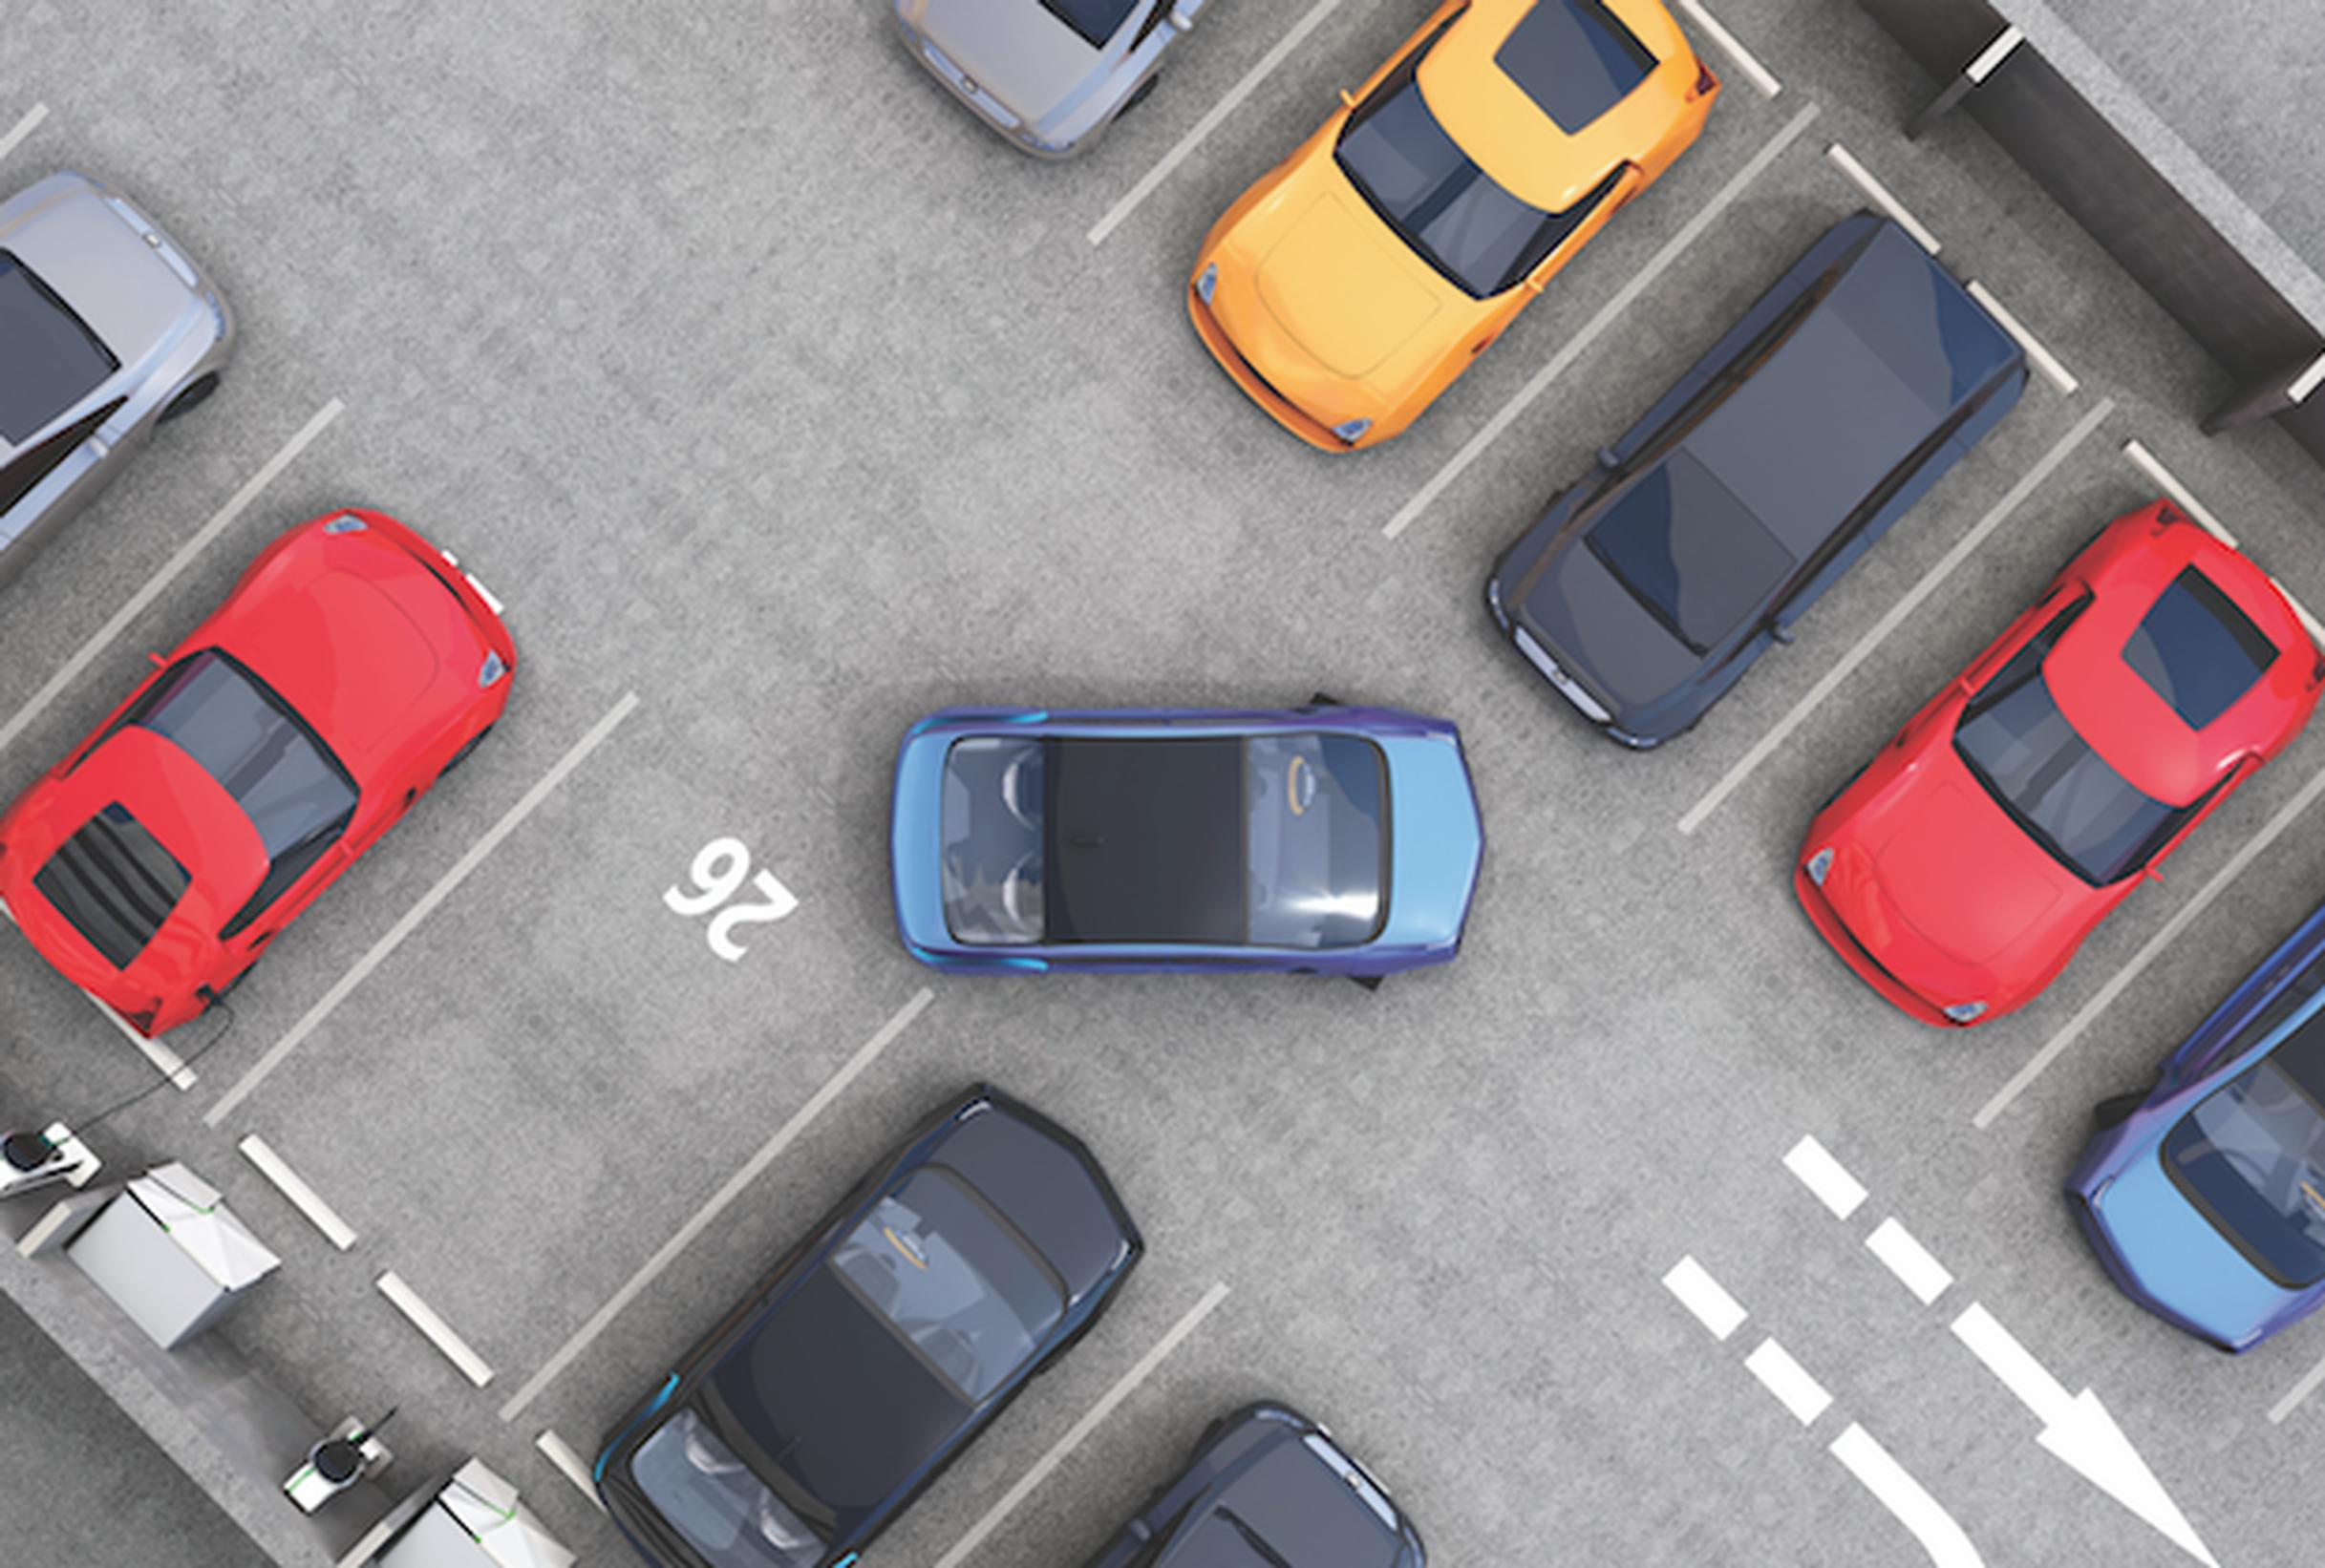 If AVs are privately-owned, the number of car parking spaces could be equivalent to today's number or slightly increased due to higher mobility rates